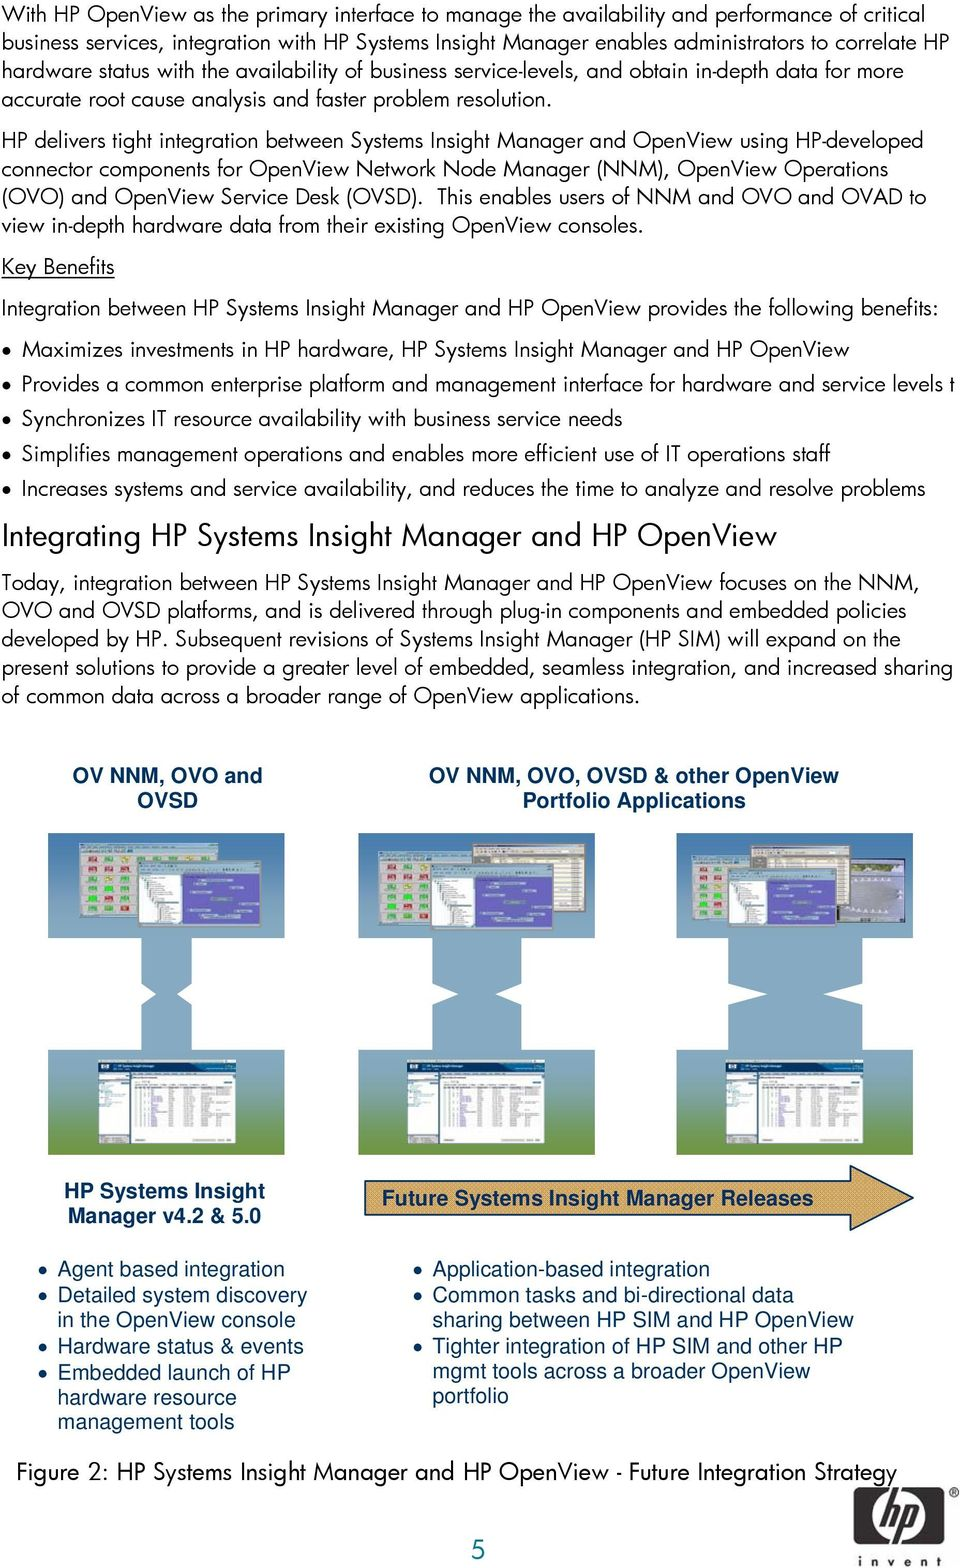 HP delivers tight integration between Systems Insight Manager and OpenView using HP-developed connector components for OpenView Network Node Manager (NNM), OpenView Operations (OVO) and OpenView